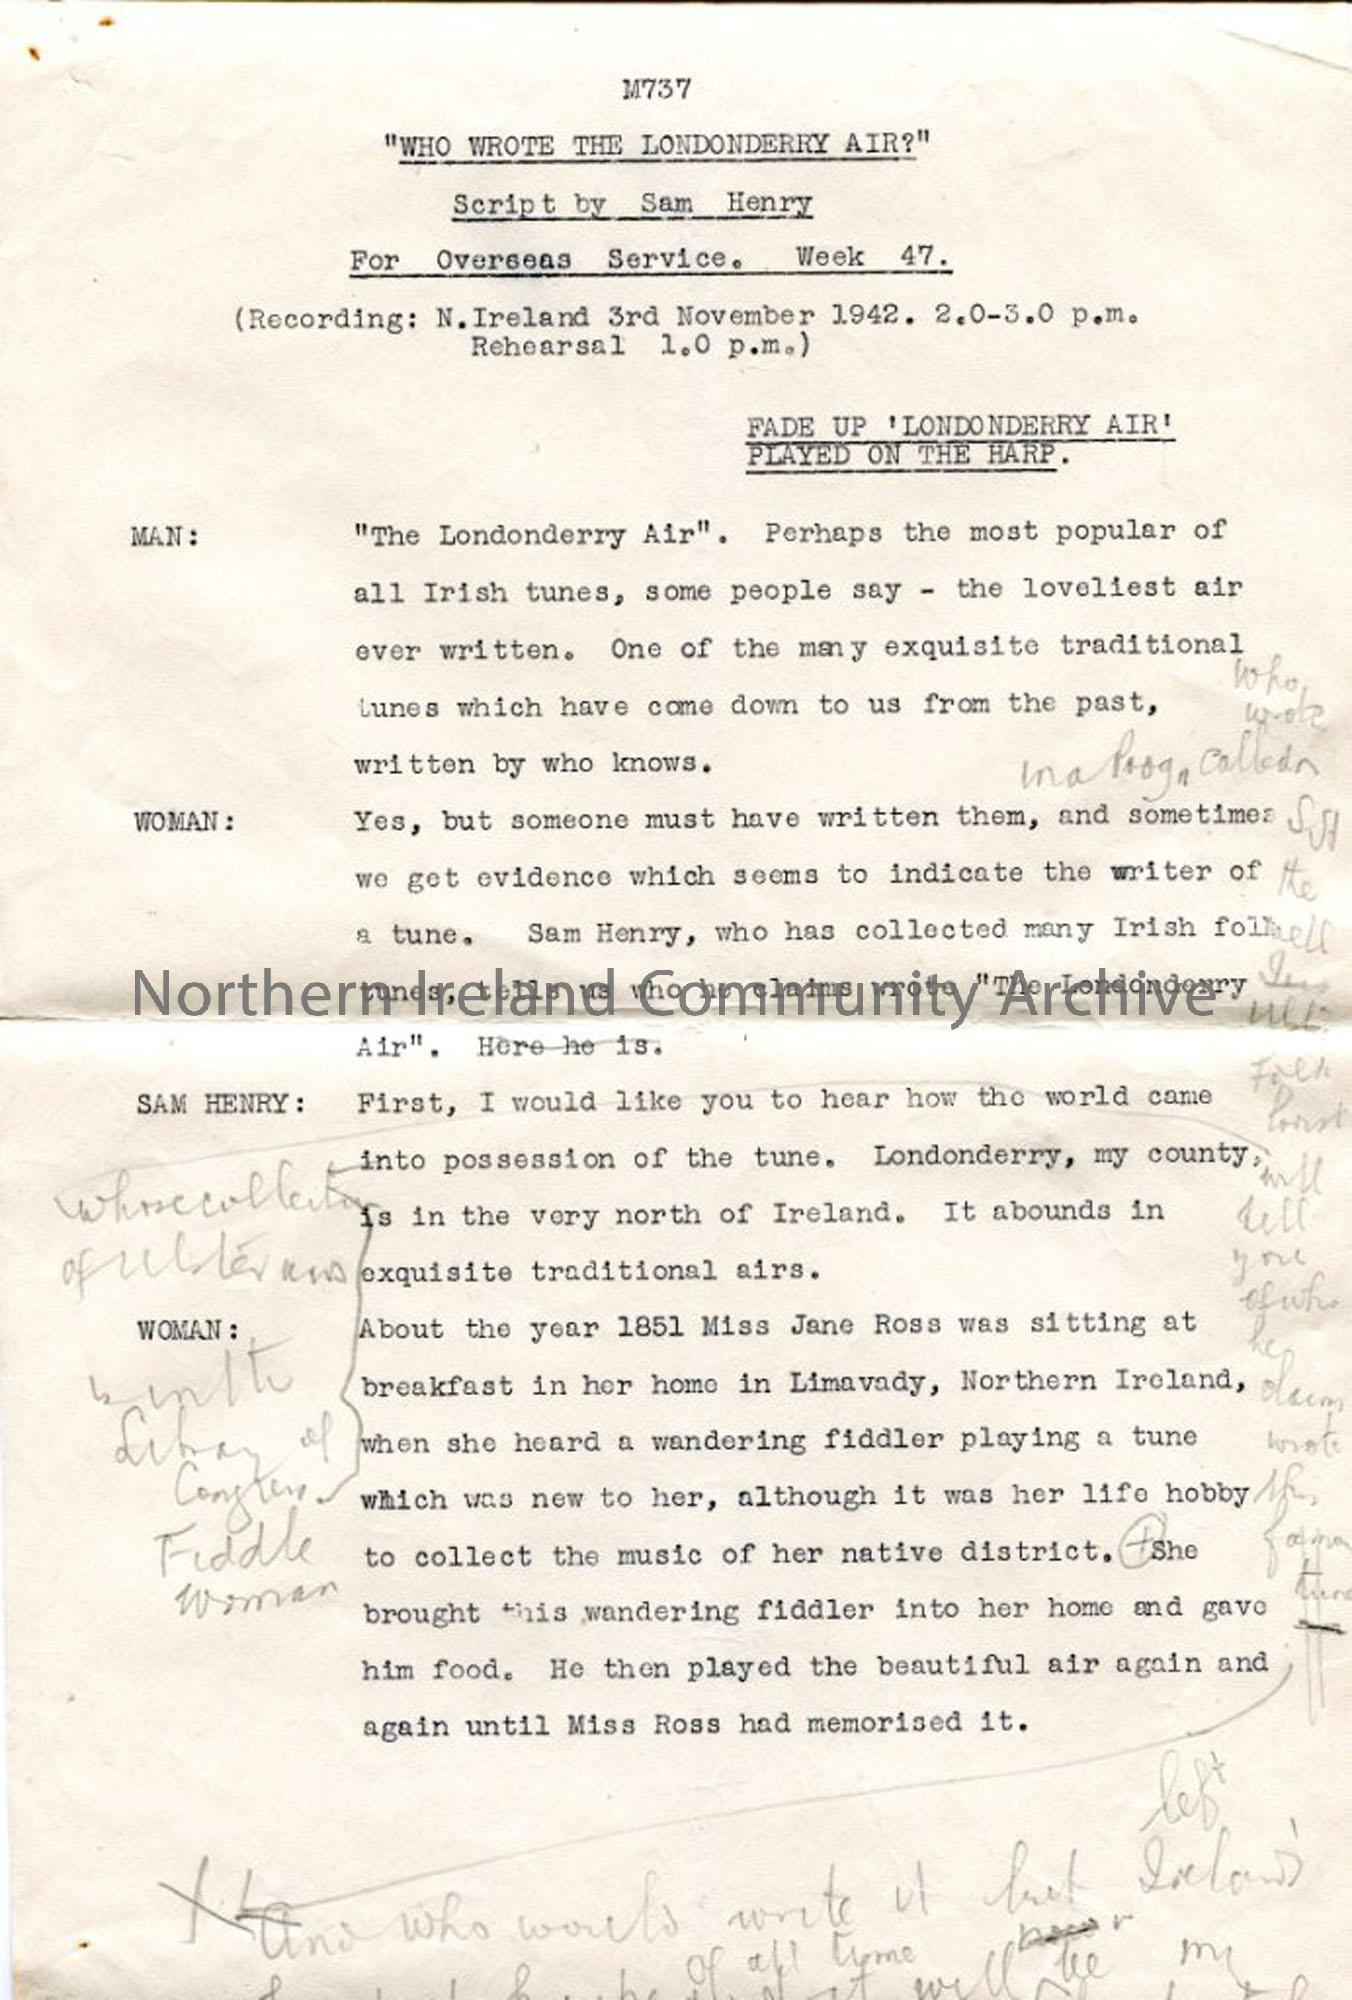 Page One of four pages – script for broadcast 'Who wrote the Londonderry Air?'